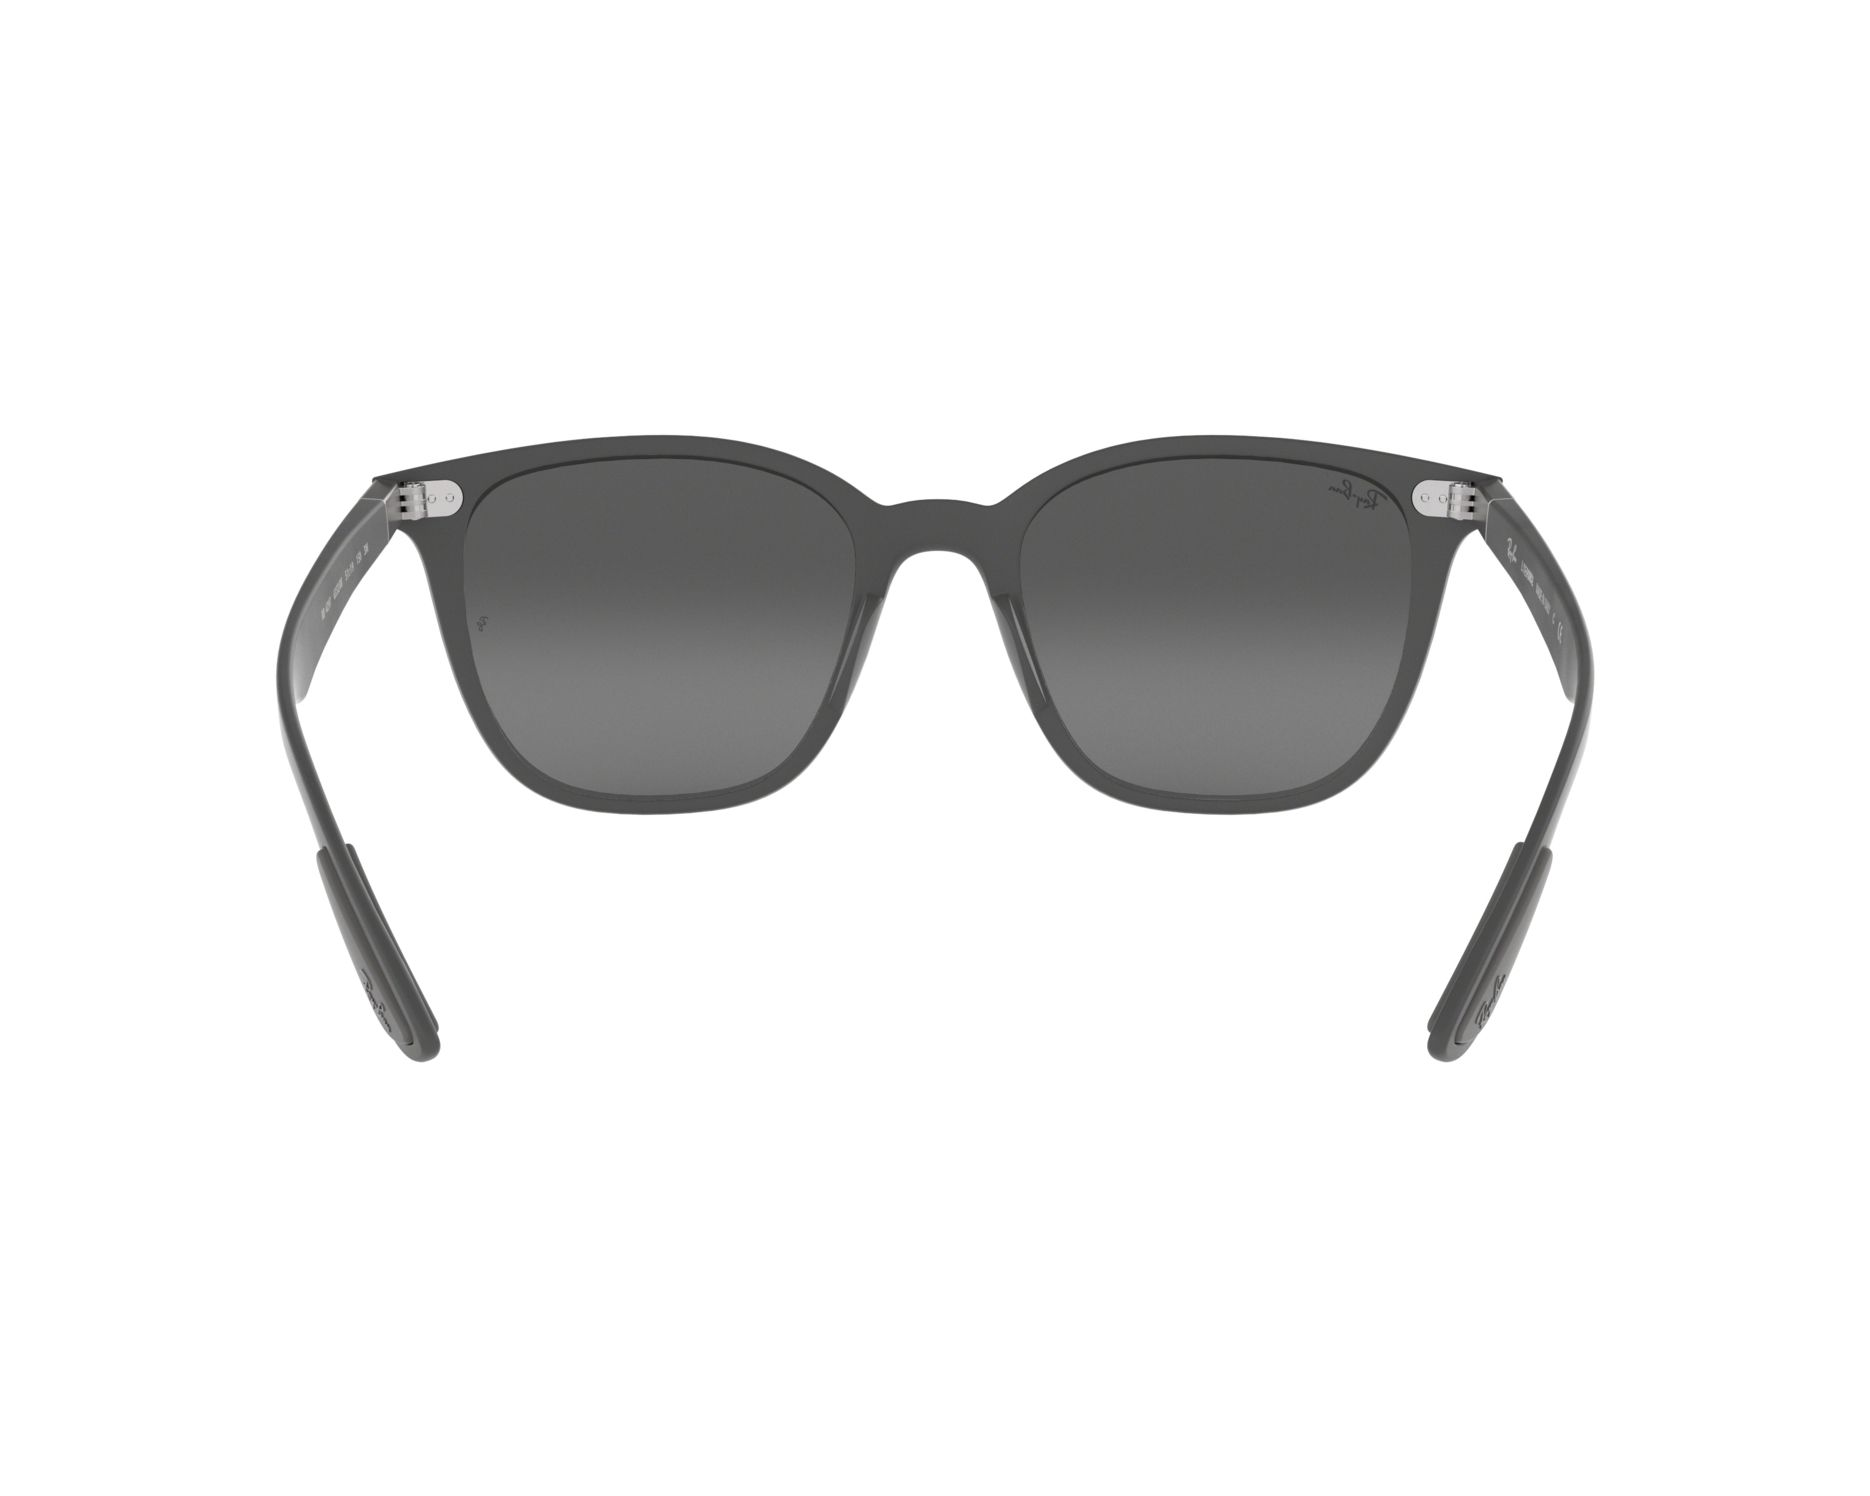 bc9de70433 Sunglasses Ray-Ban RB-4297 633288 51-19 Grey 360 degree view 7